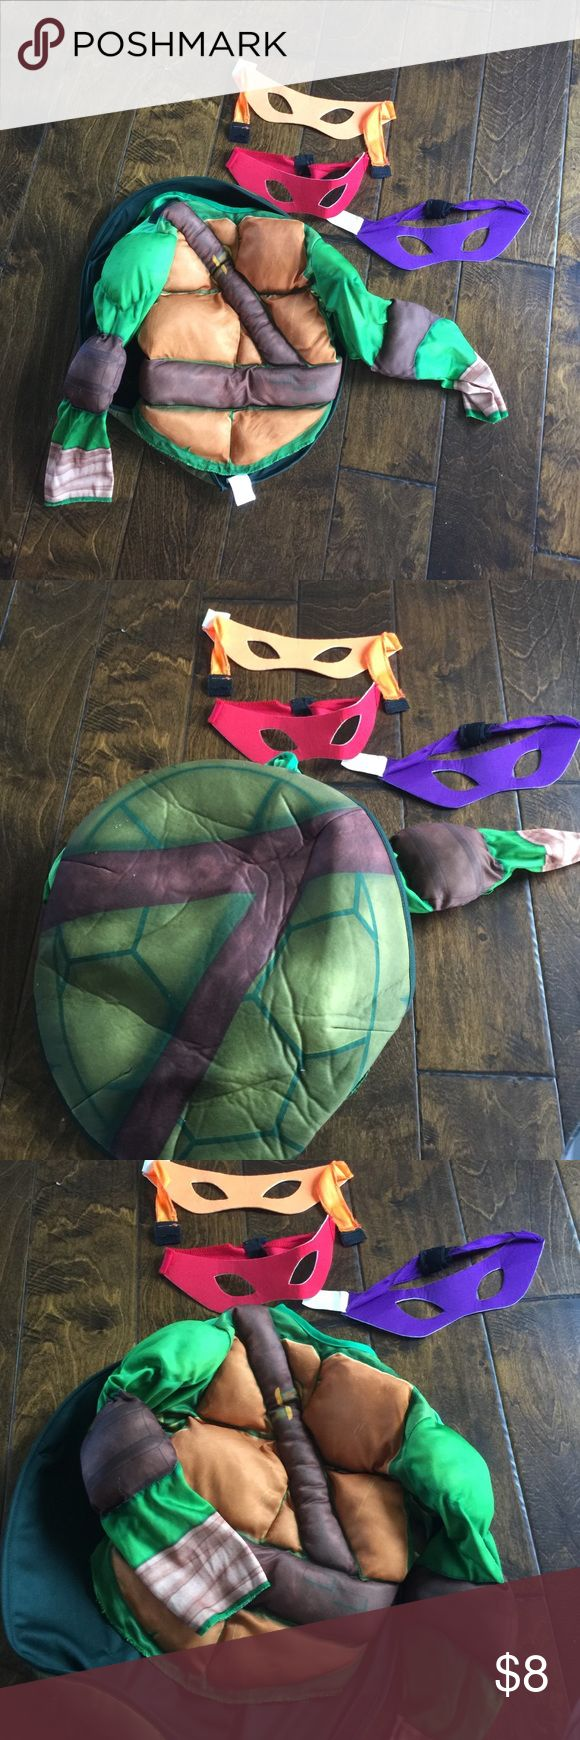 Boys nija turtle outfit Fits boys 3-5 nija turtle outfit has she'll back and 3 different masks. In good condition Costumes Superhero